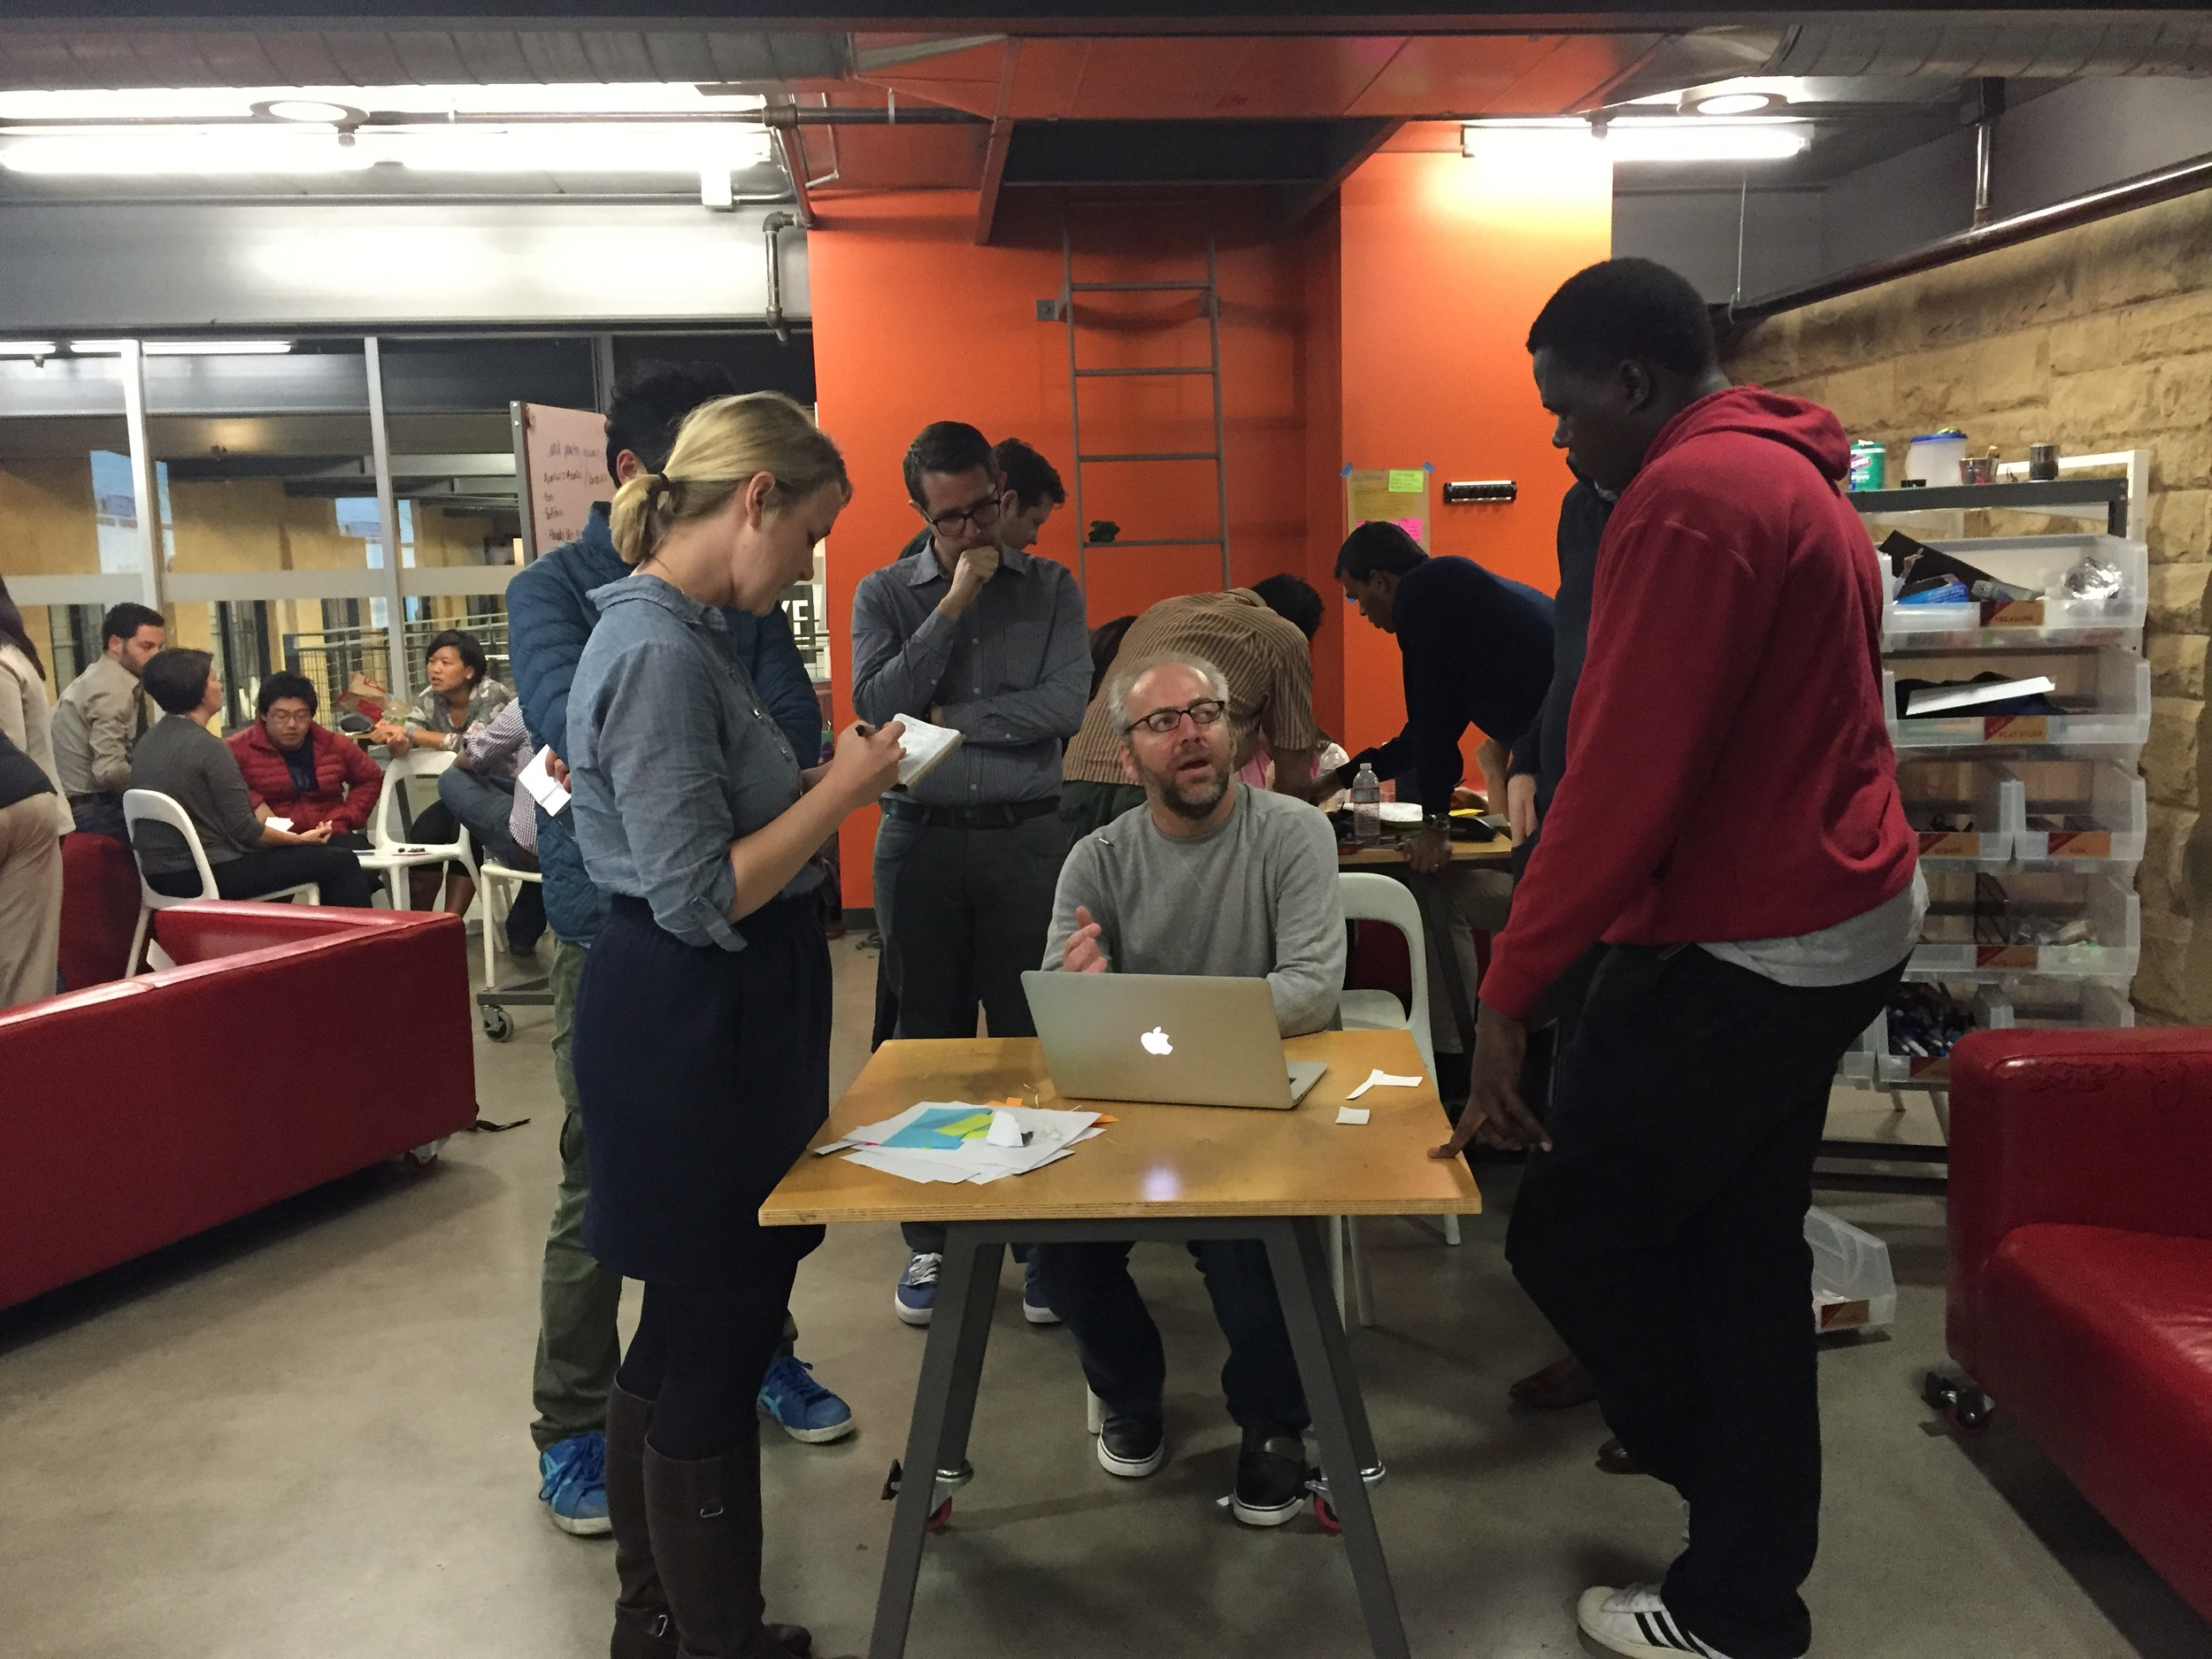 Mike Davidson, Vice President of Design at Twitter (center) works with students as they test their prototypes. (Emi Kolawole)